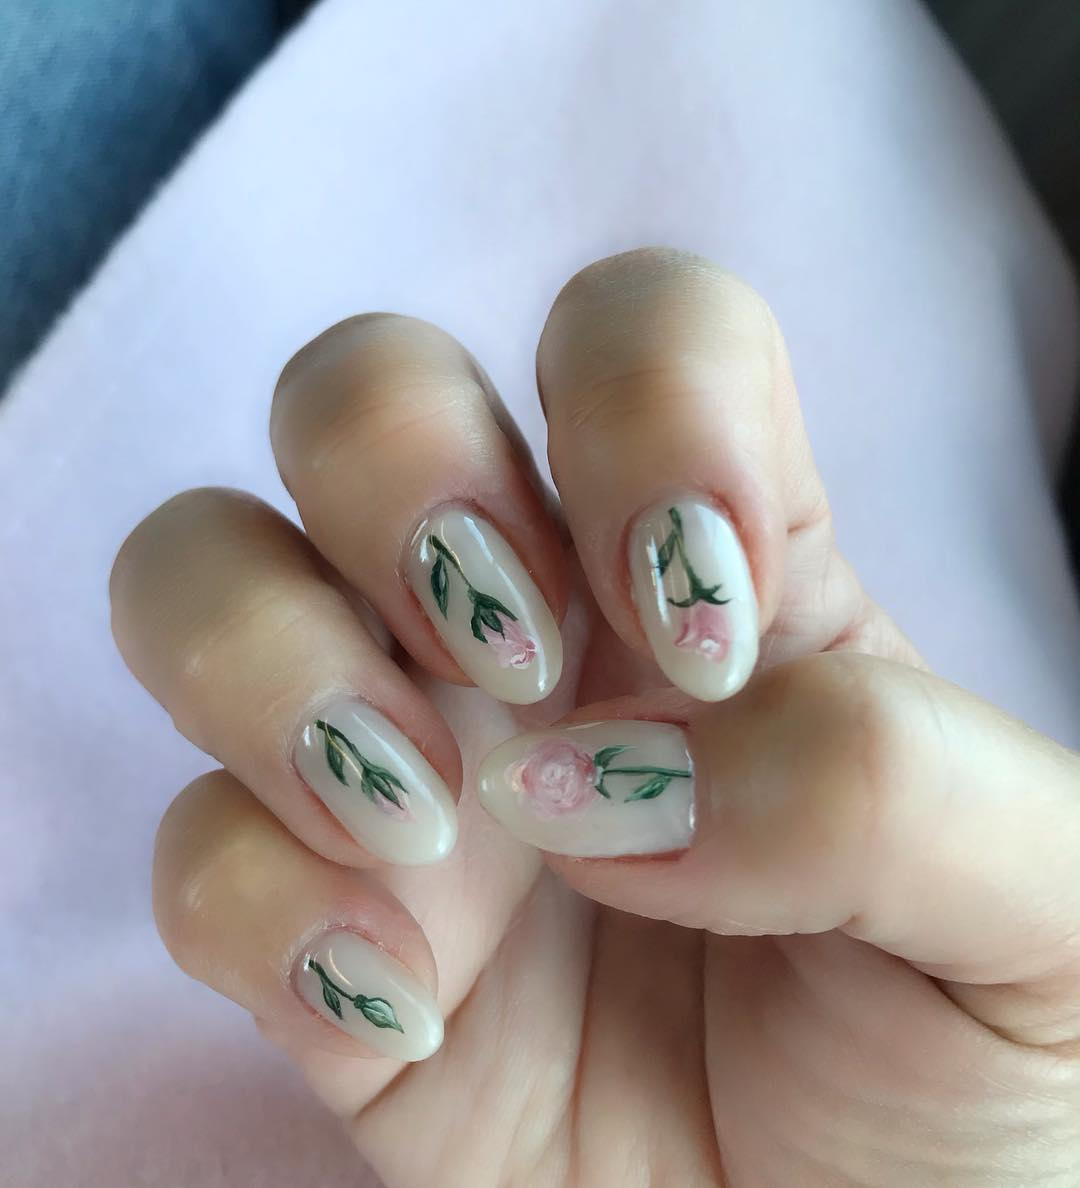 Adorable and Simple White Nails with Baby Pink Floral Nail Art